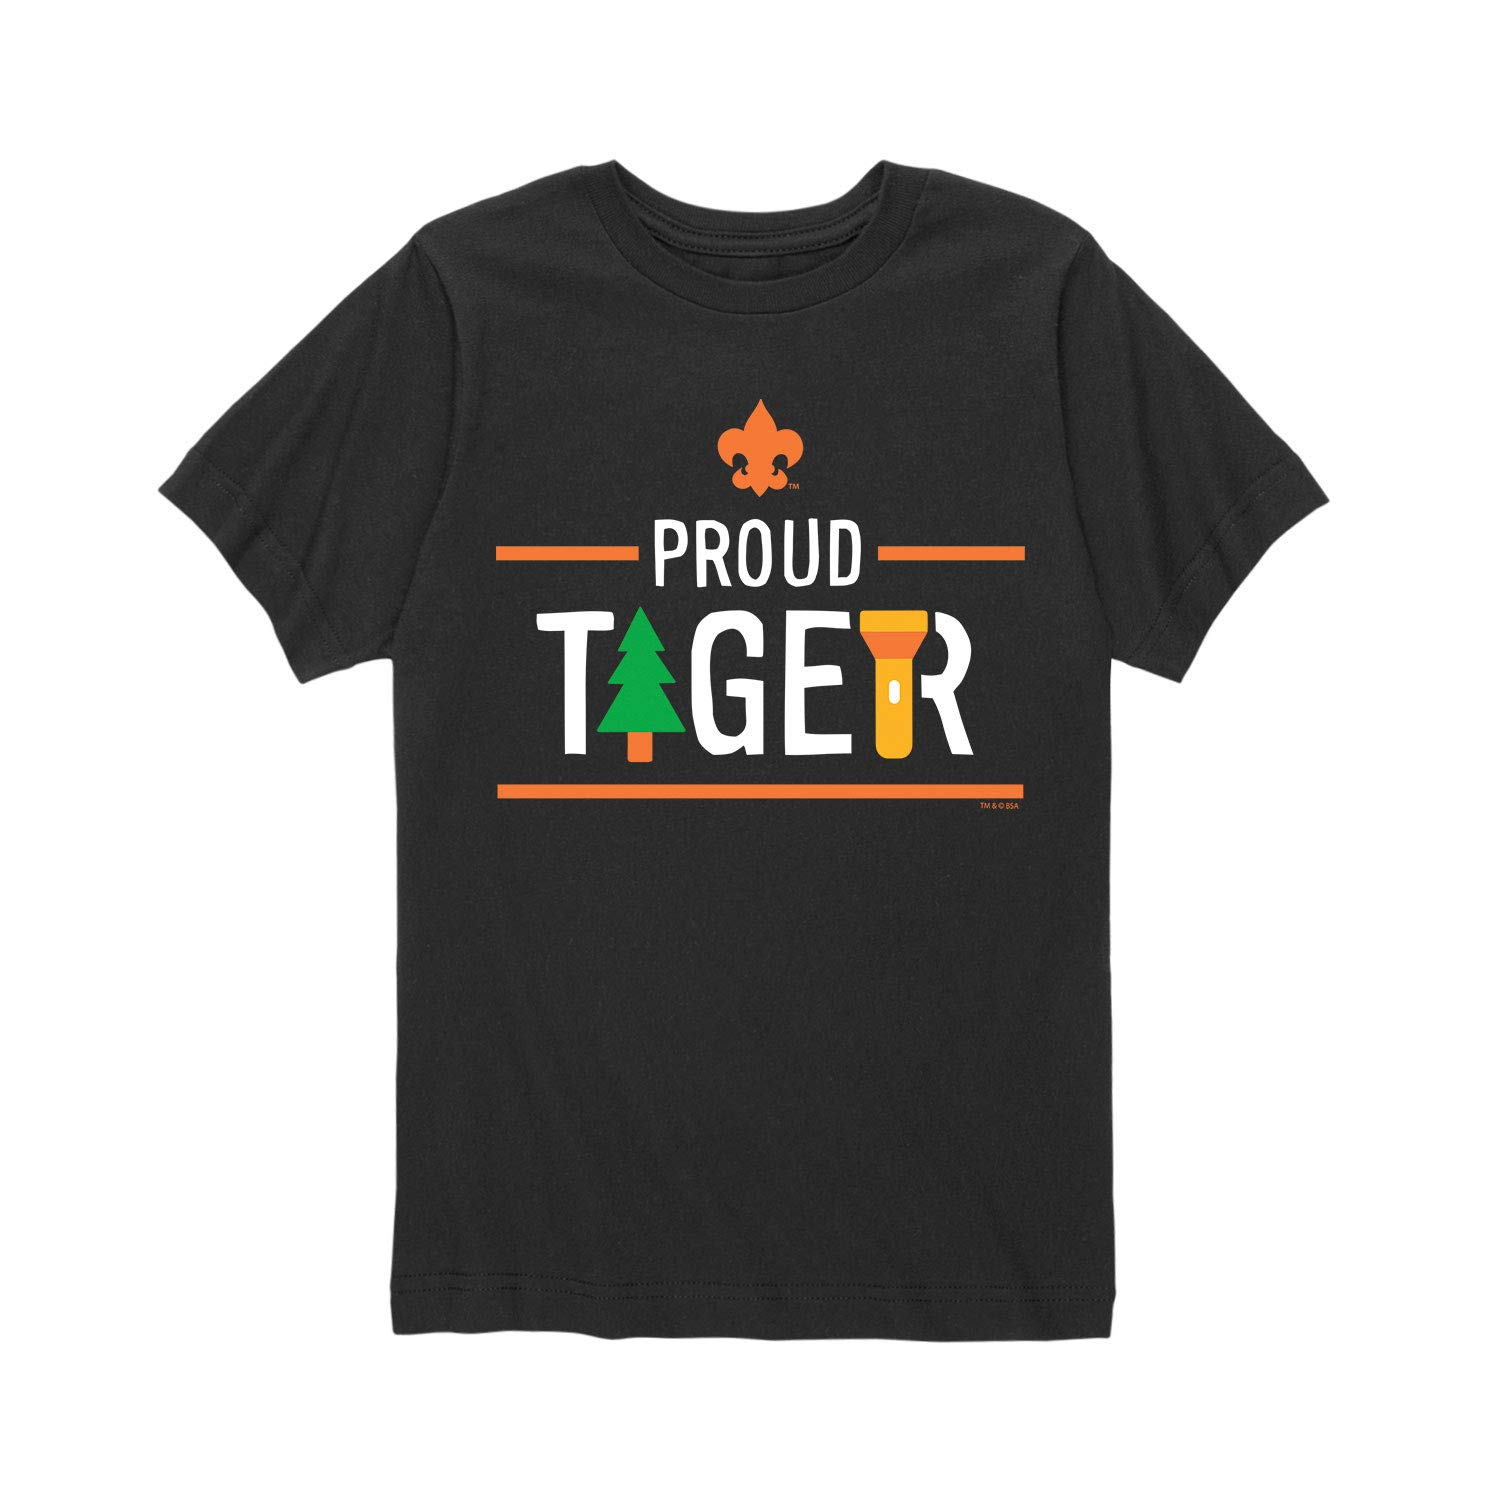 Boy Scouts of America Icon Tiger Cub Scout - Youth Short Sleeve Tee Black by Instant Message